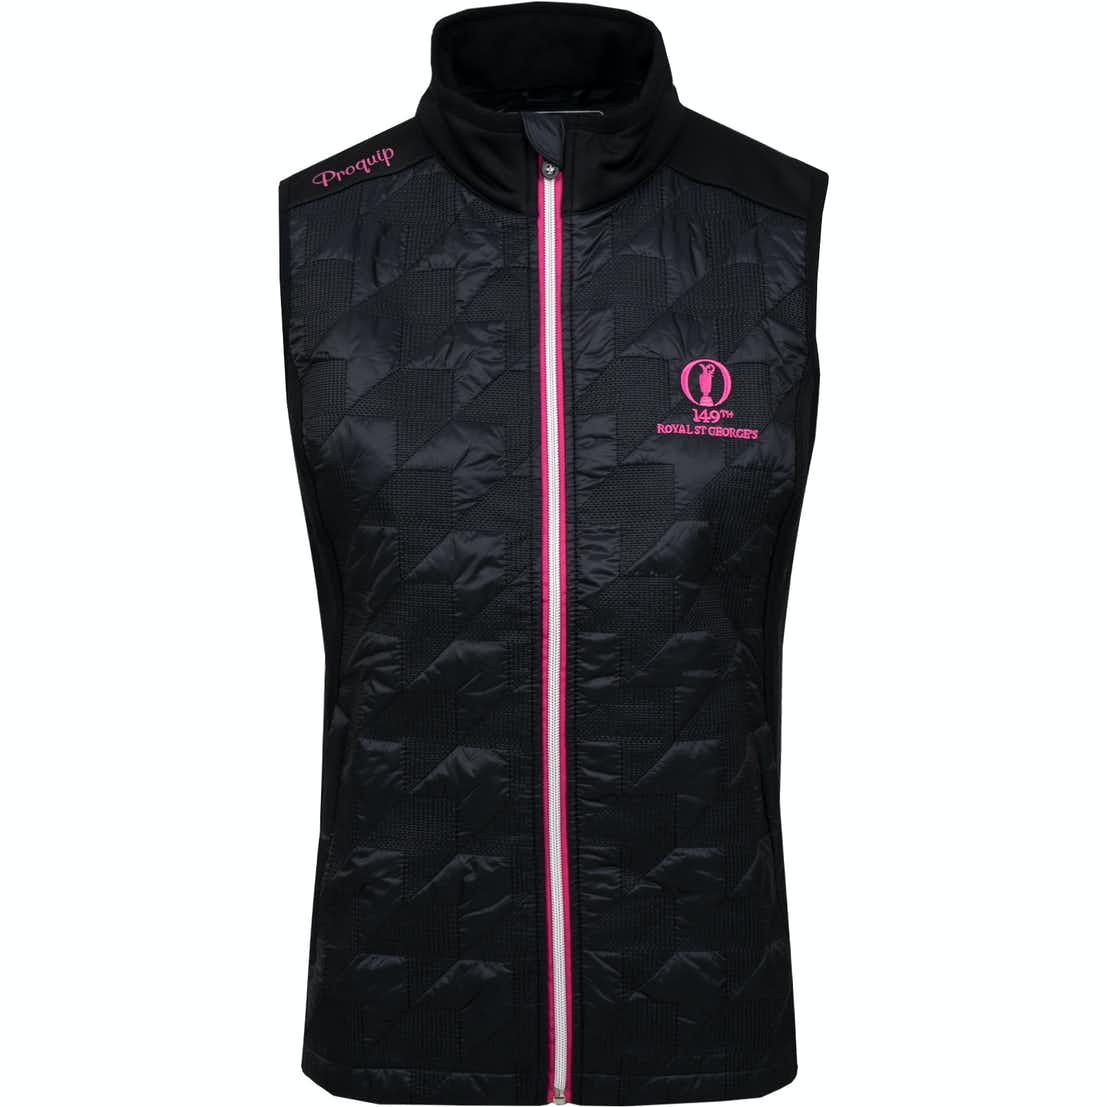 149th Royal St George's Therma Tour Gilet - Black